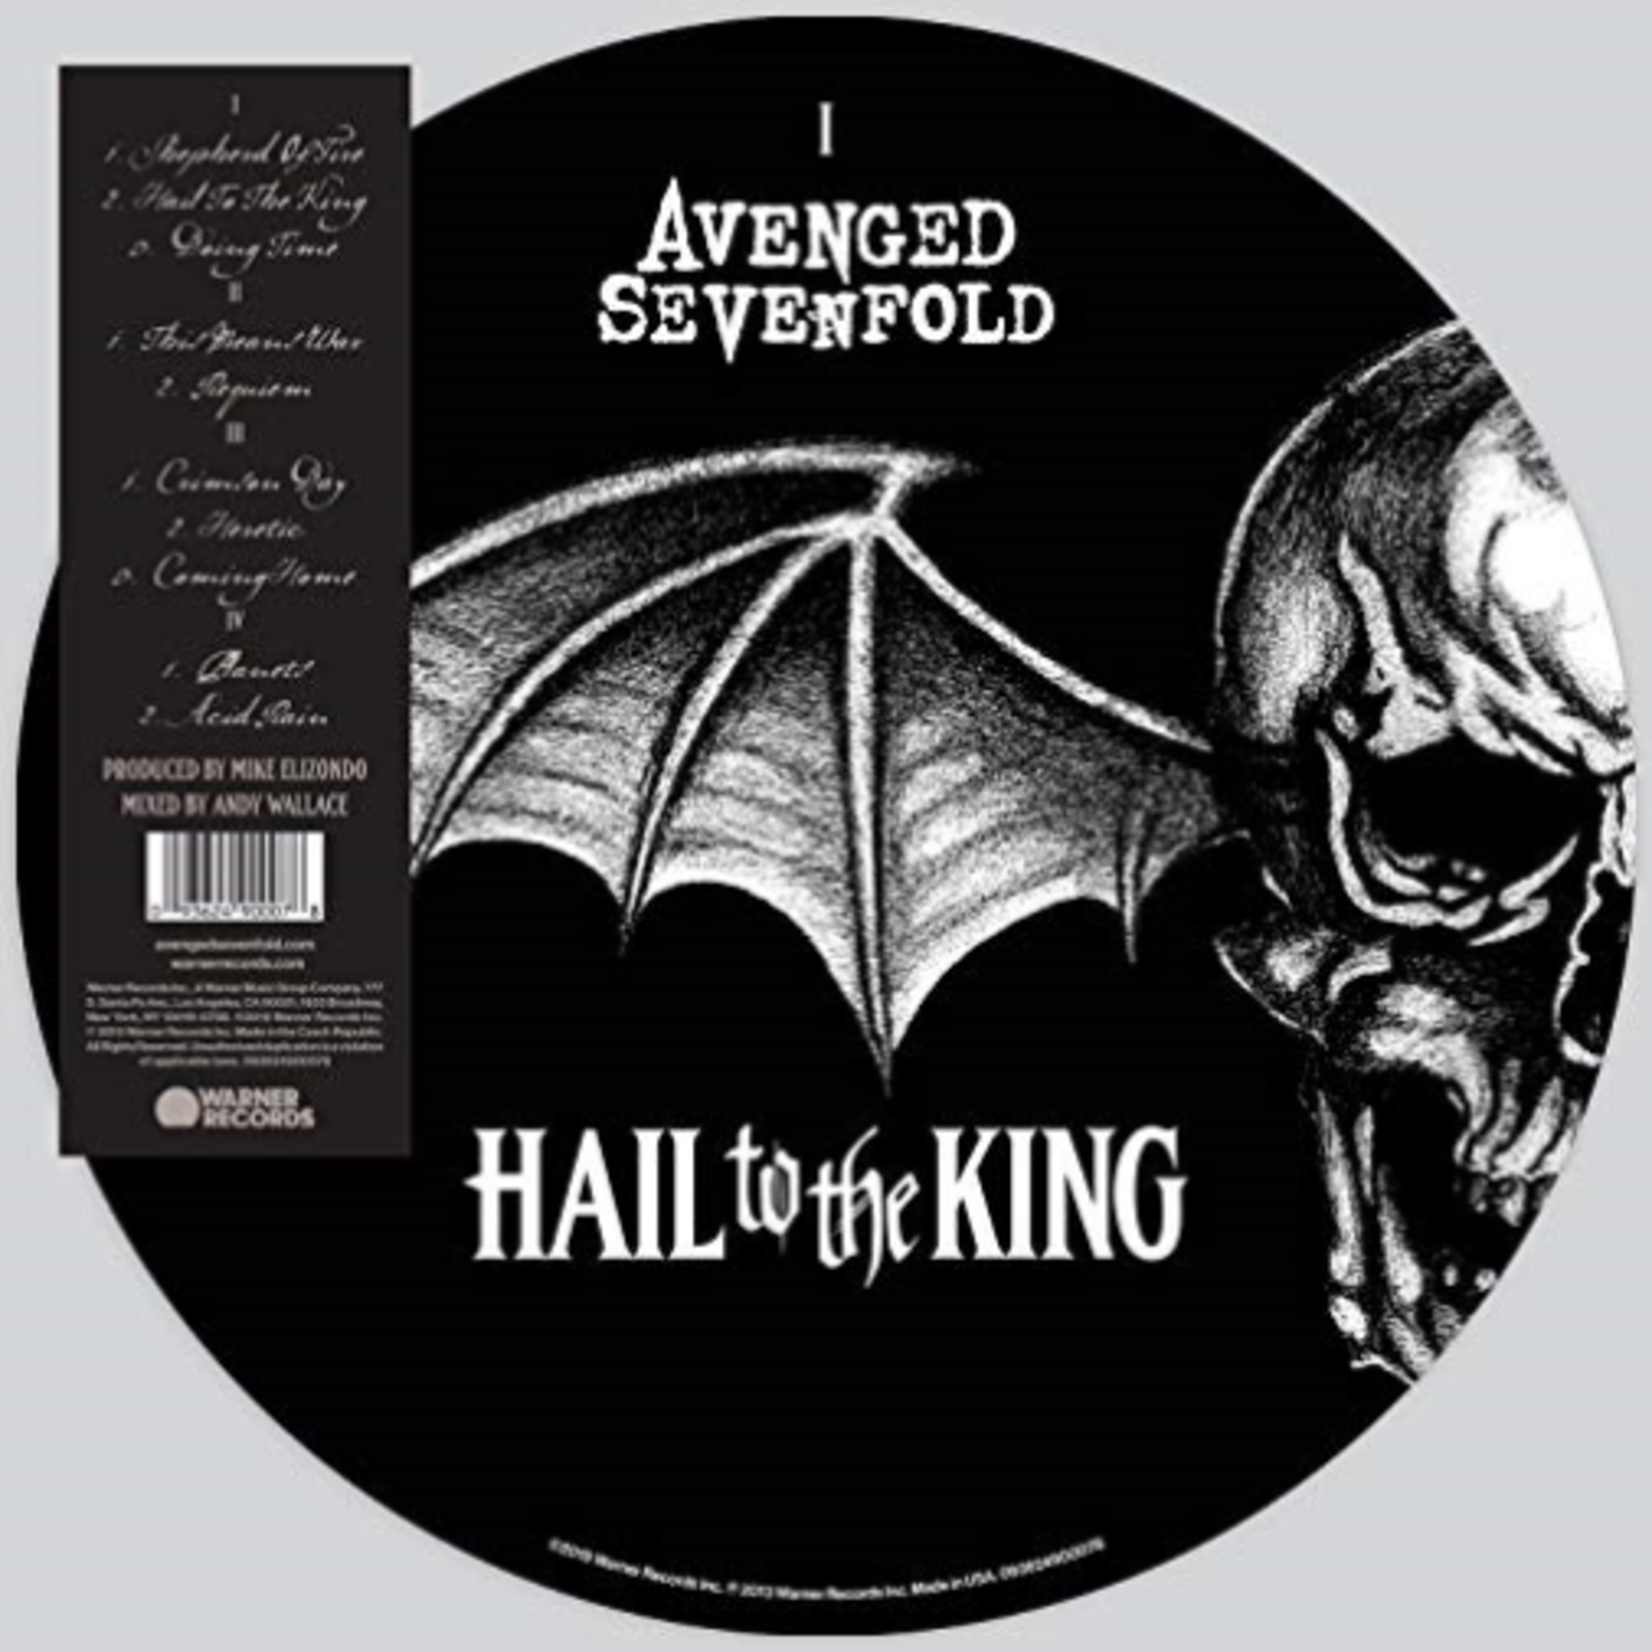 AVENGED SEVENFOLD HAIL TO THE KING (2LP PICTURE DISC SET)